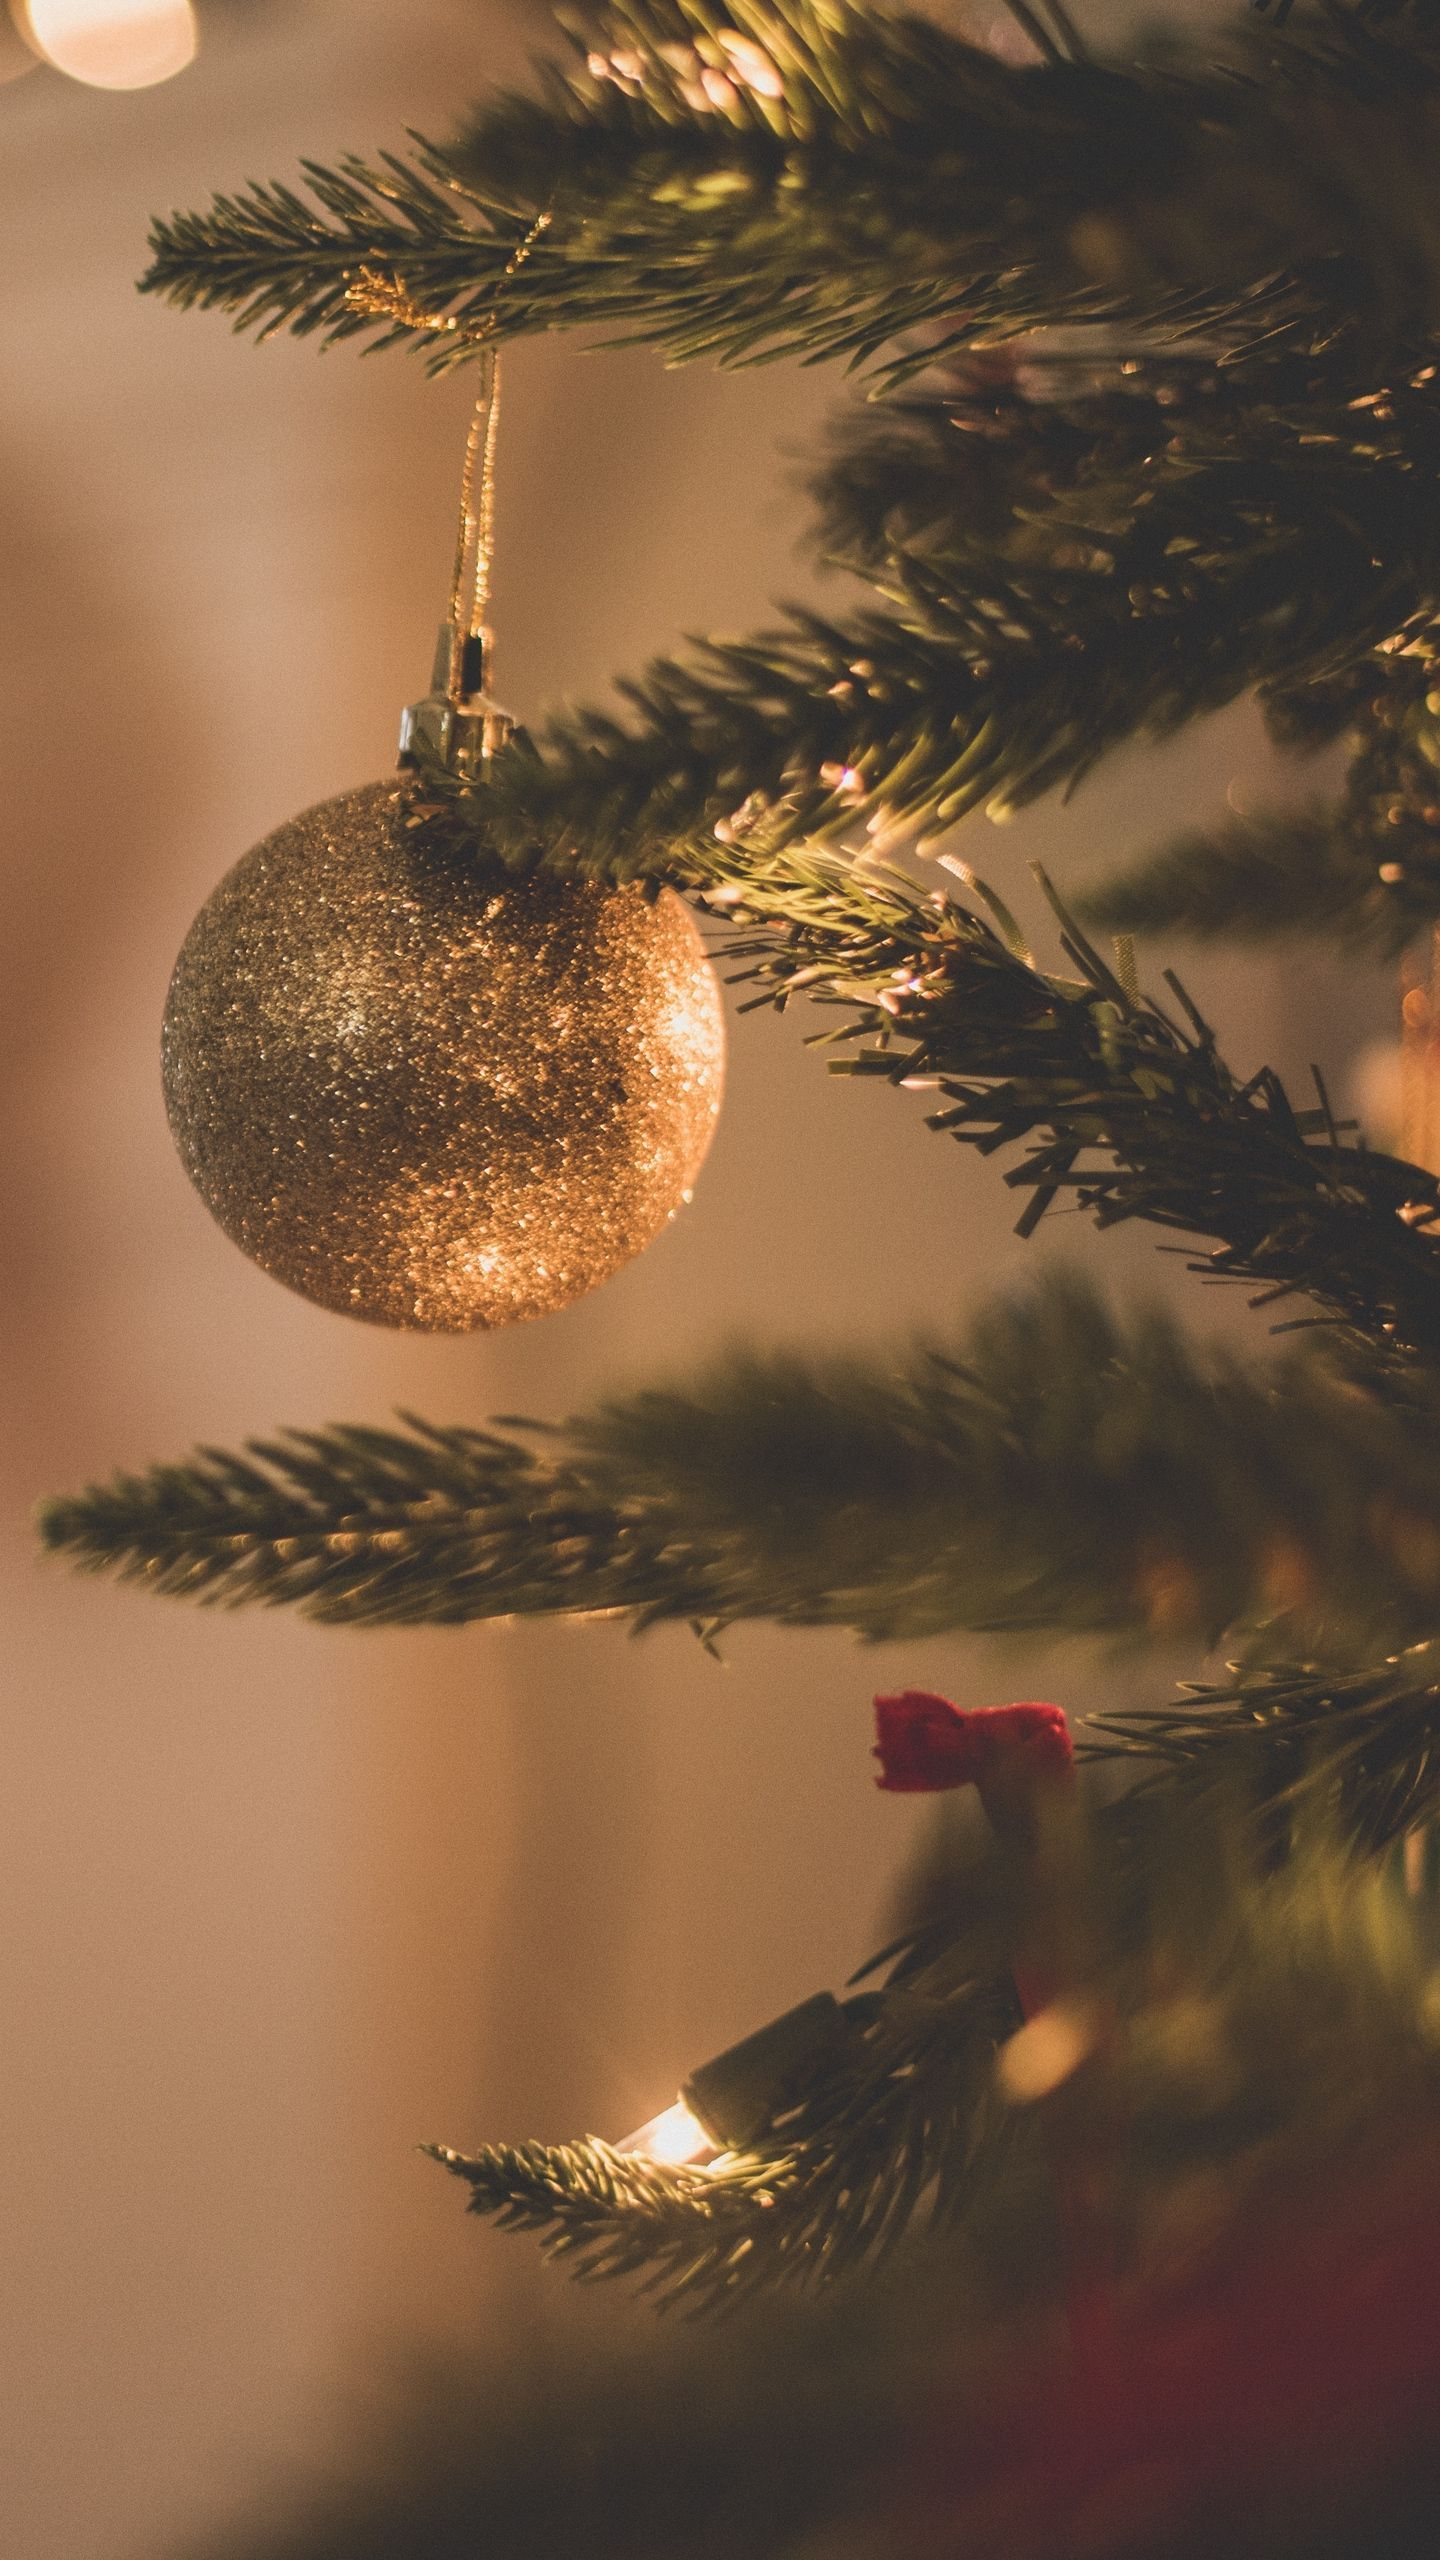 Christmas Wallpaper 1440x2560 3D Wallpapers Android